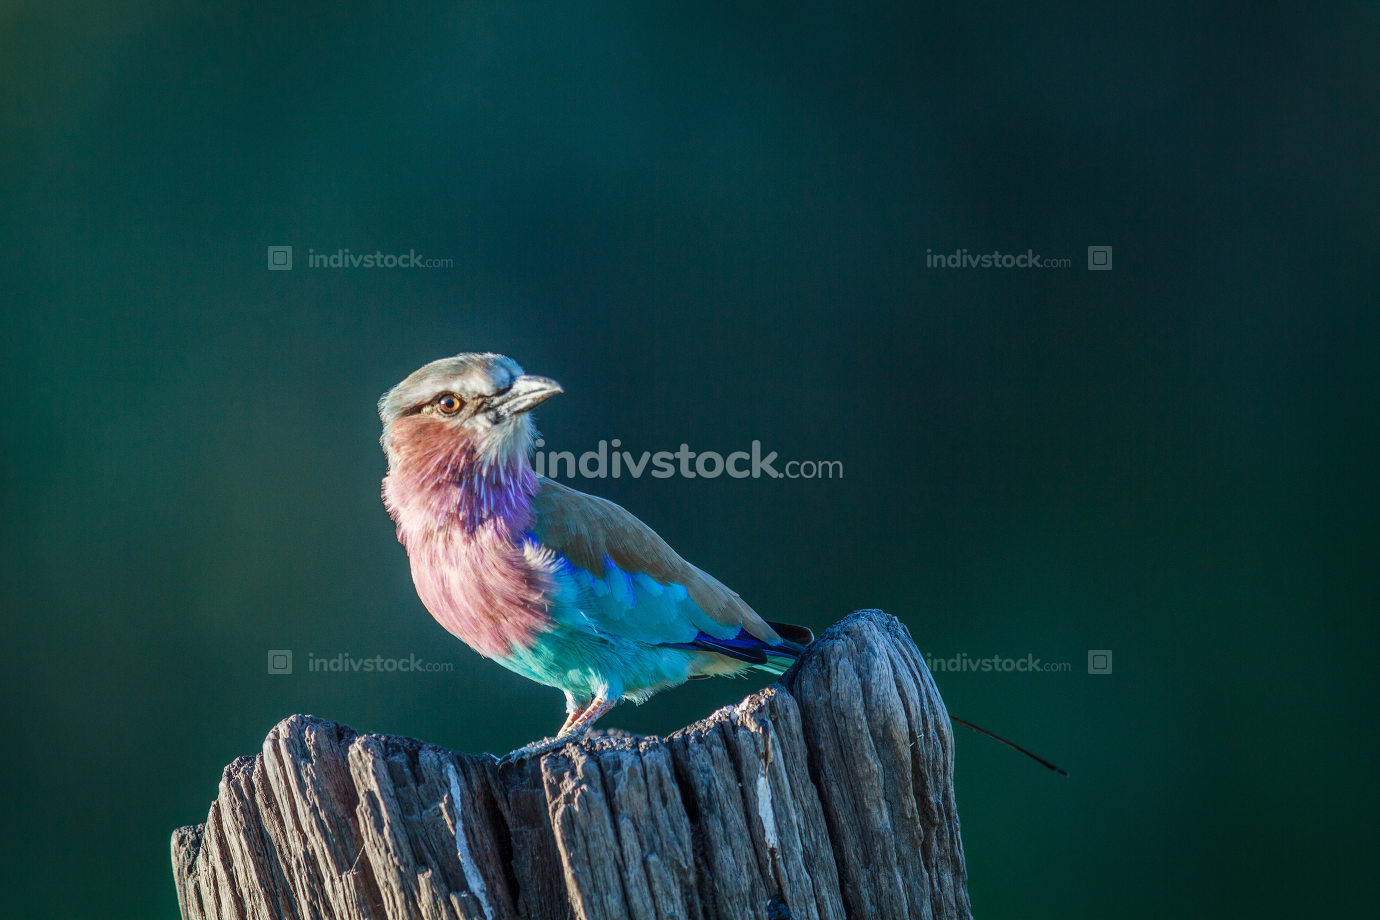 Lilac-breasted roller on a tree trunk.